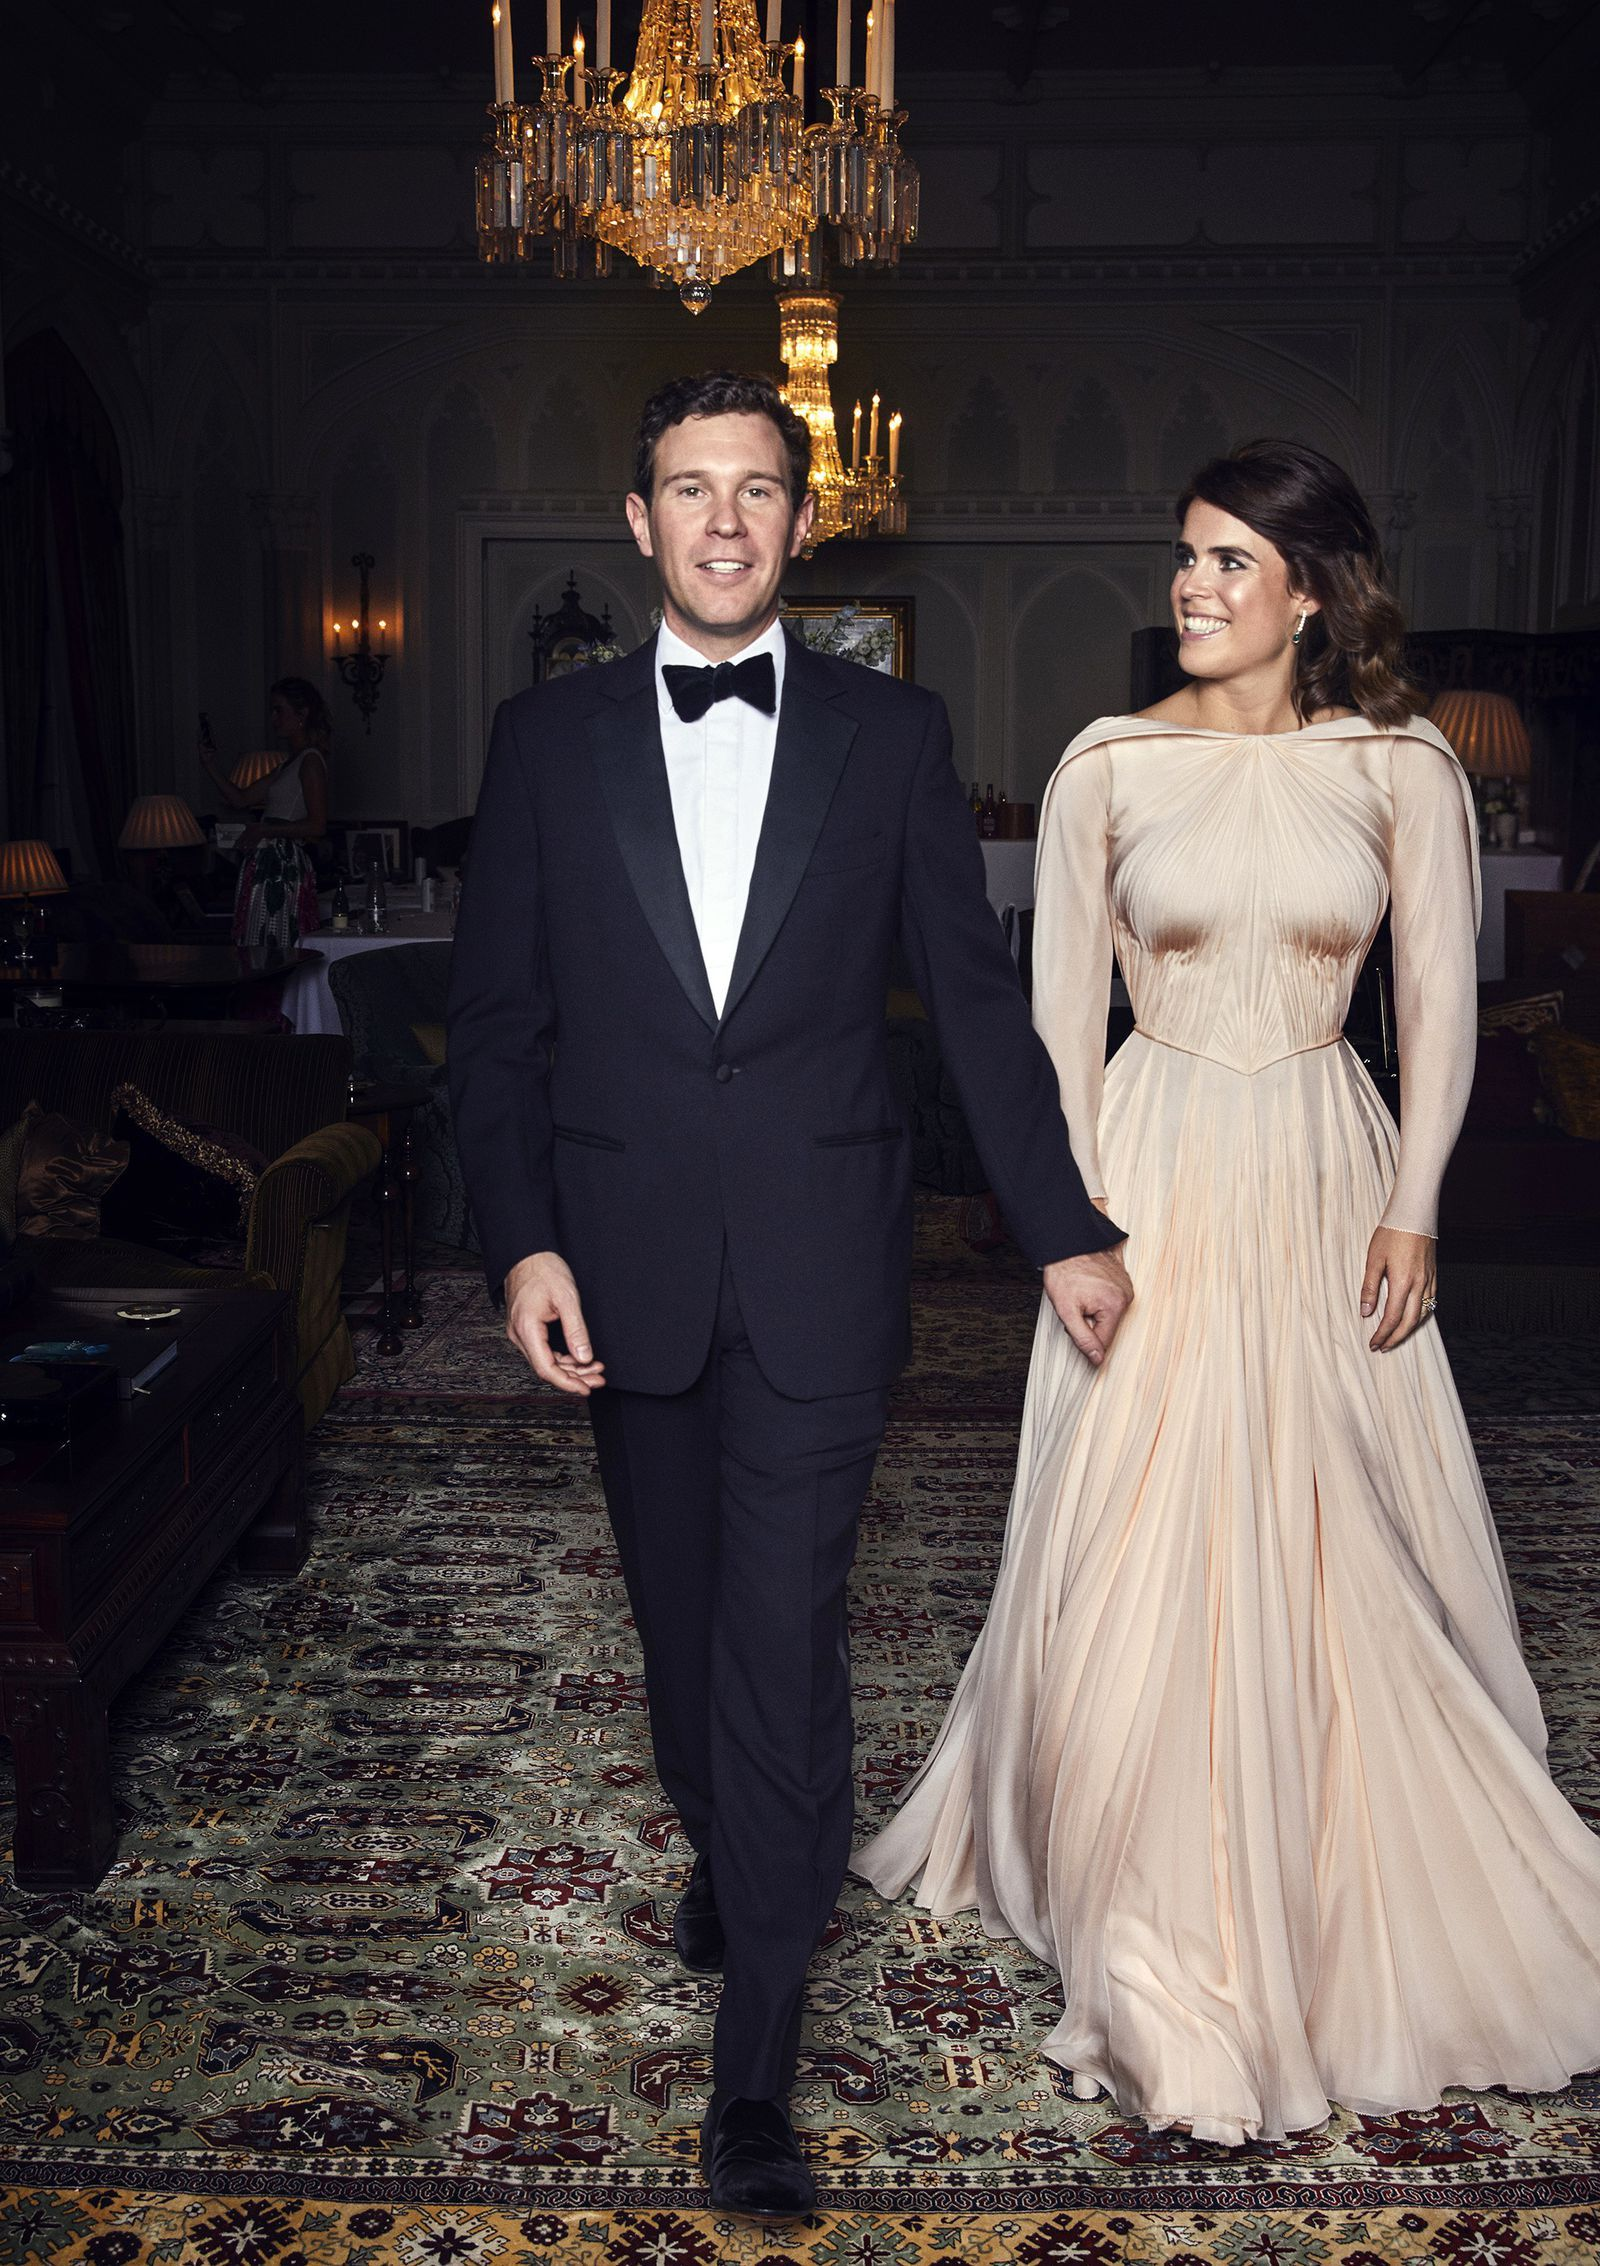 The Official Portraits From Princess Eugenie S Royal Wedding Are Here Second Wedding Dresses Eugenie Wedding Wedding Reception Dress